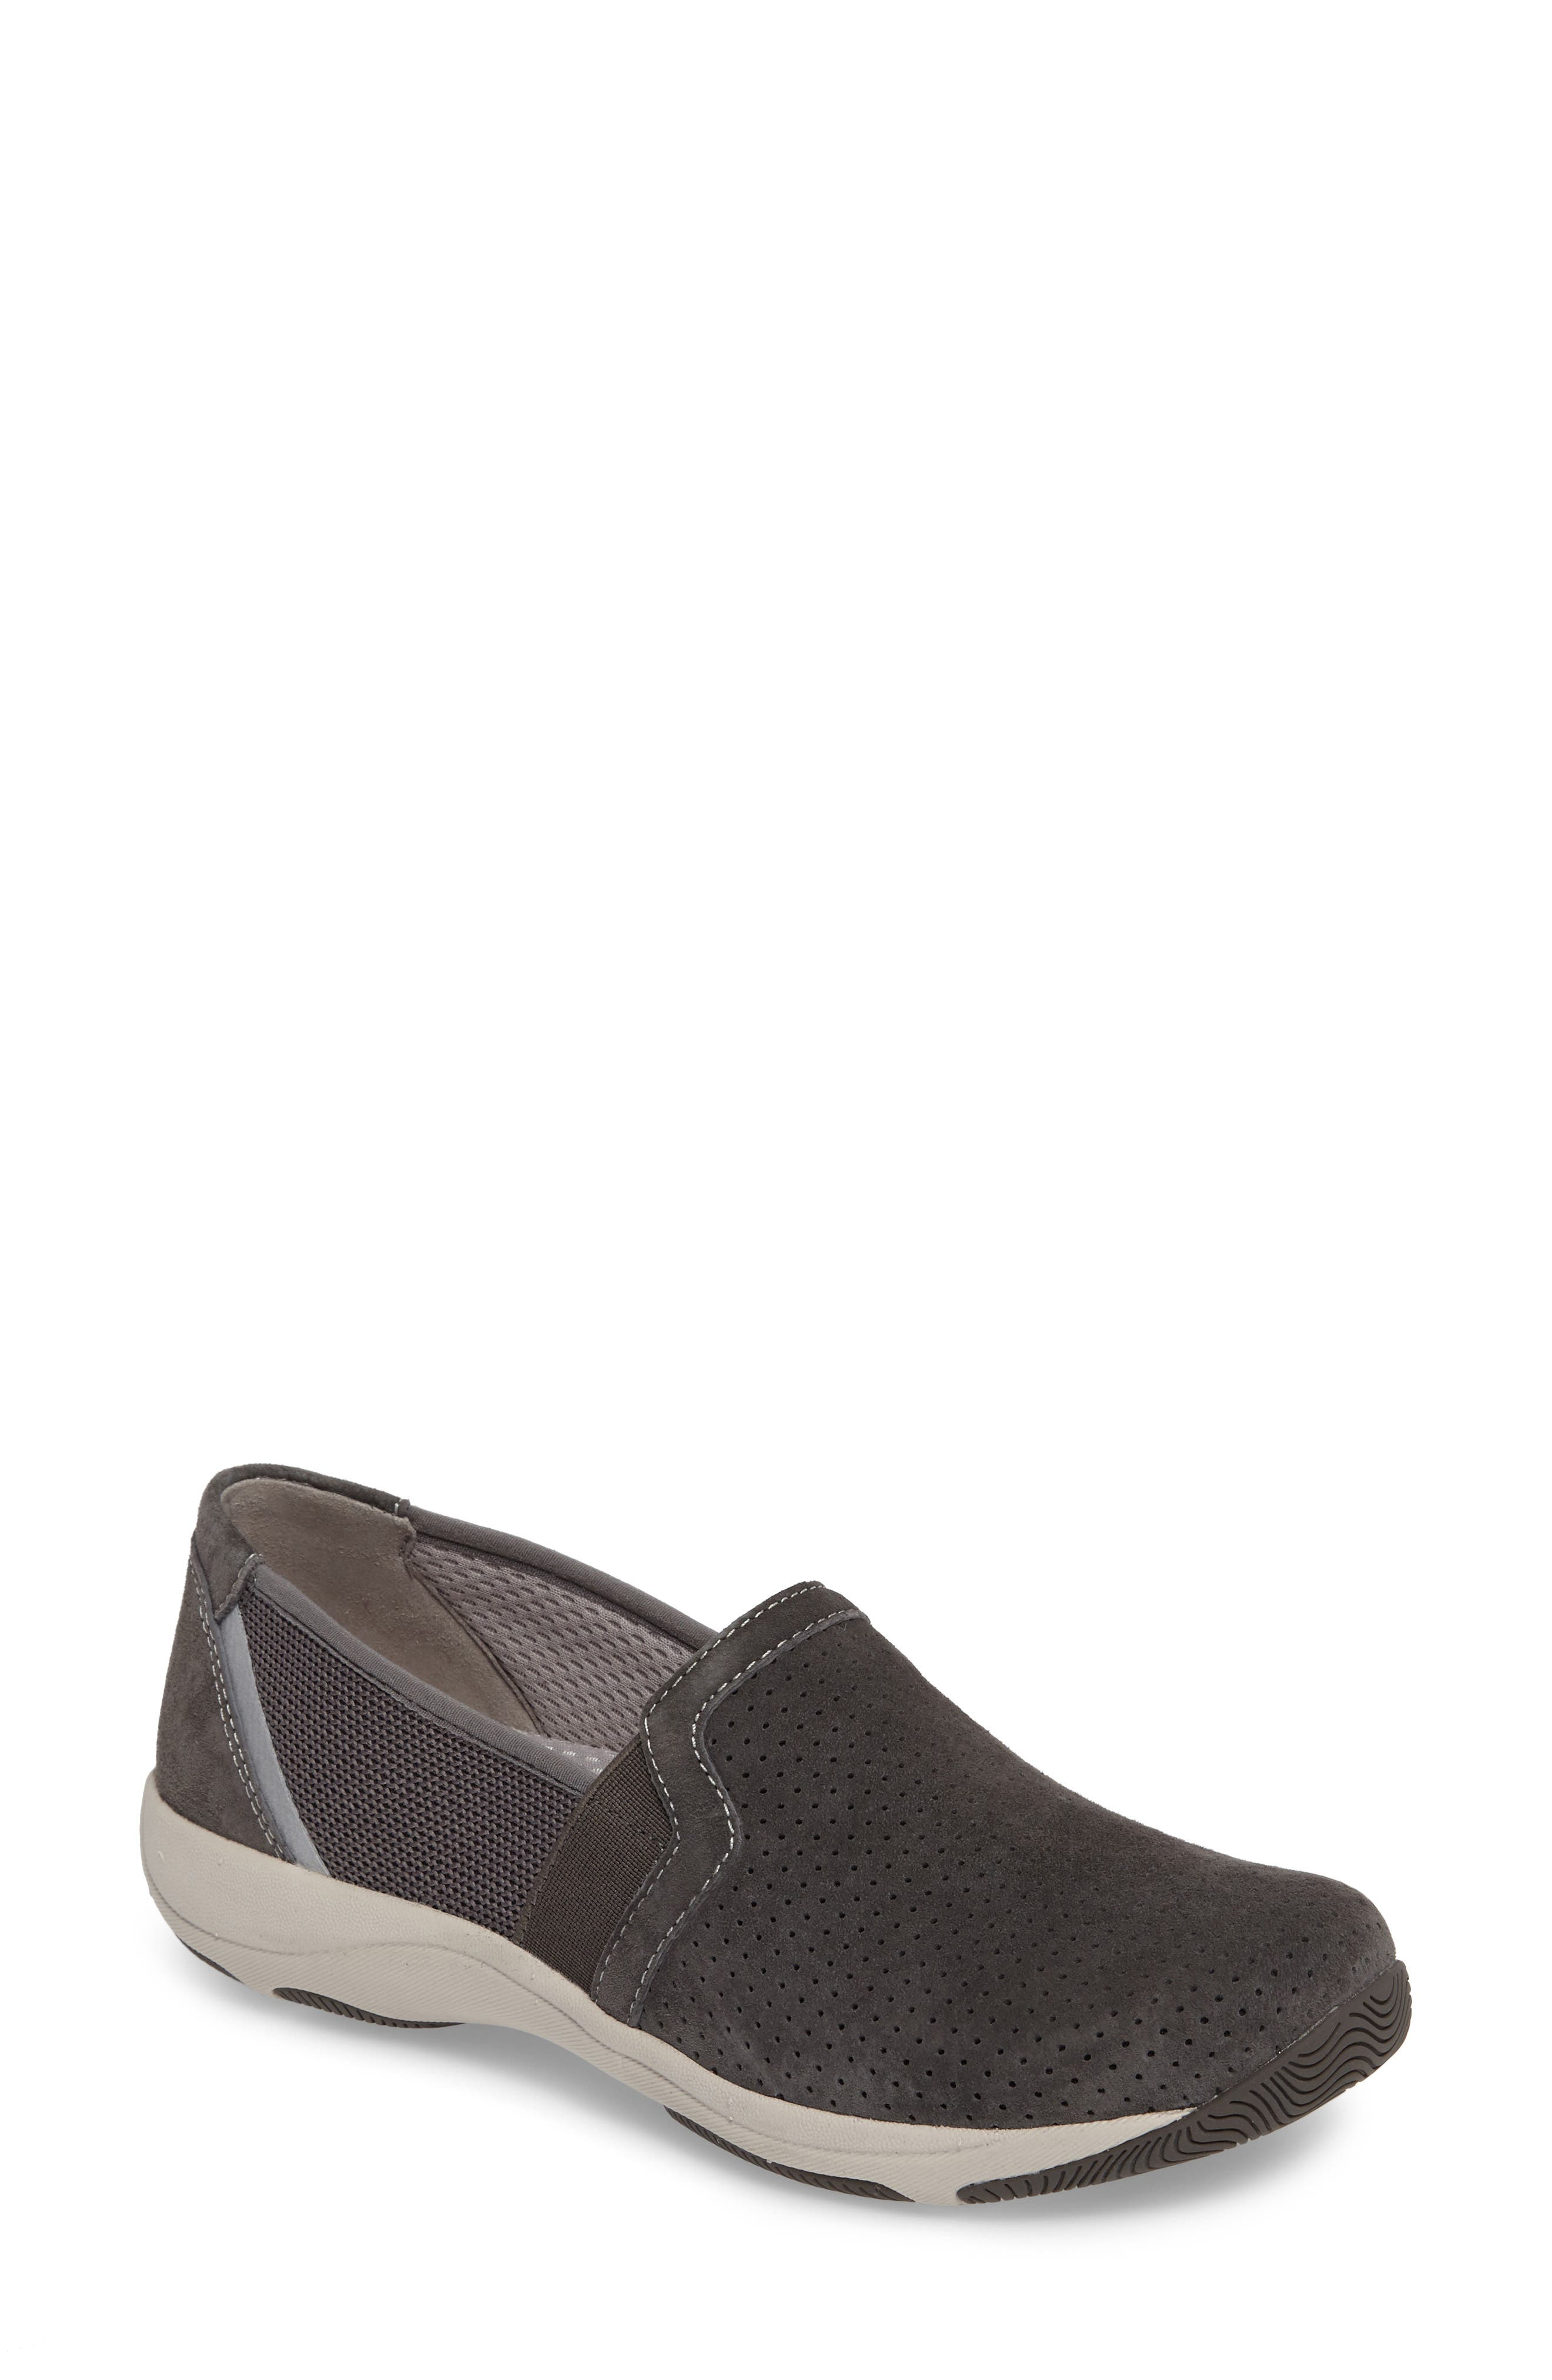 Halifax Collection Halle Slip-On Sneaker,                             Main thumbnail 2, color,